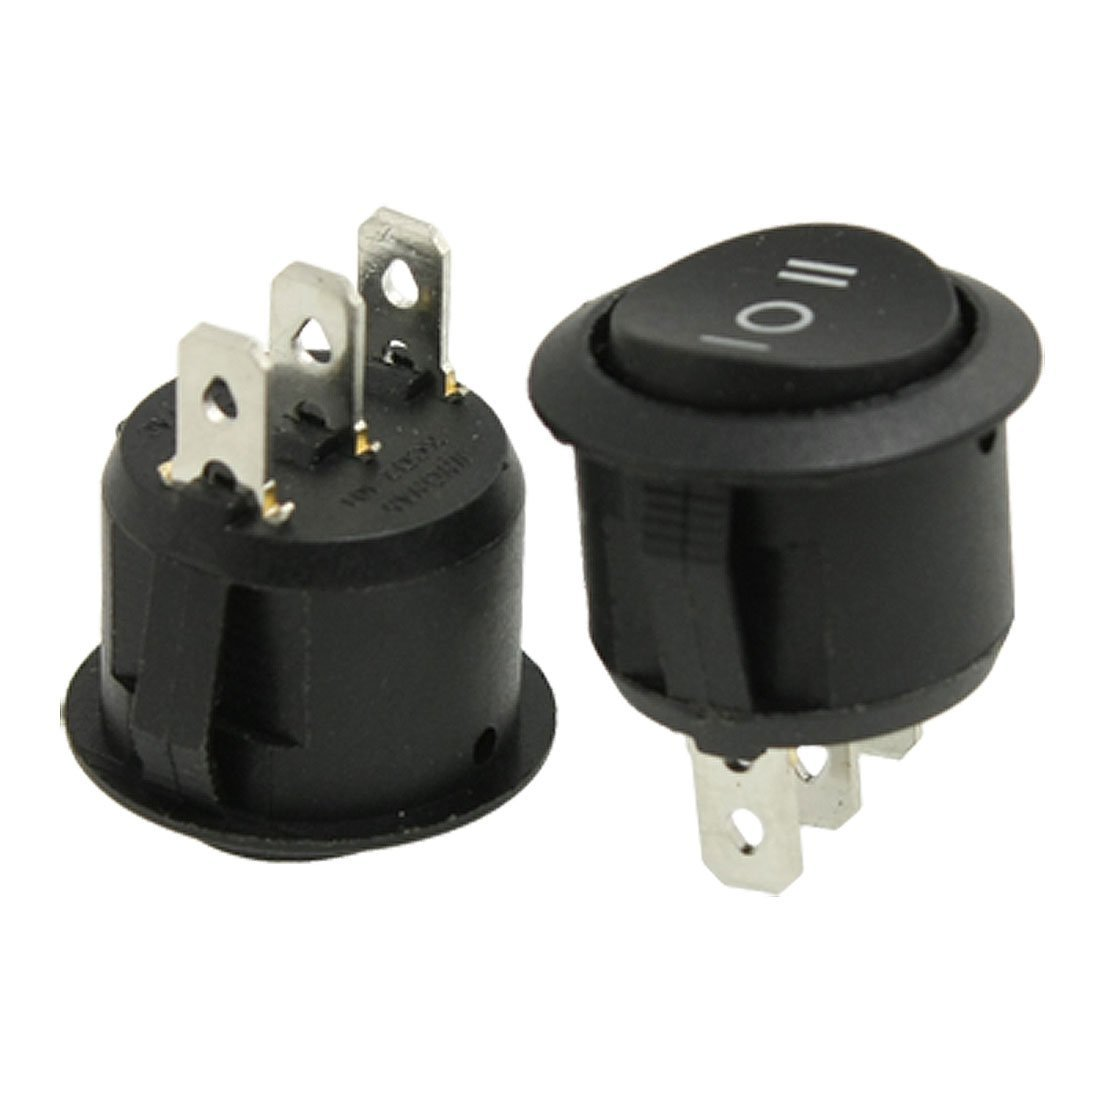 SODIAL(R) 2 xCA 6A / 250V 10A / 125V 3 broches SPDT ON / OFF / ON 3 positions Rond Bateau Interrupteur a bascule